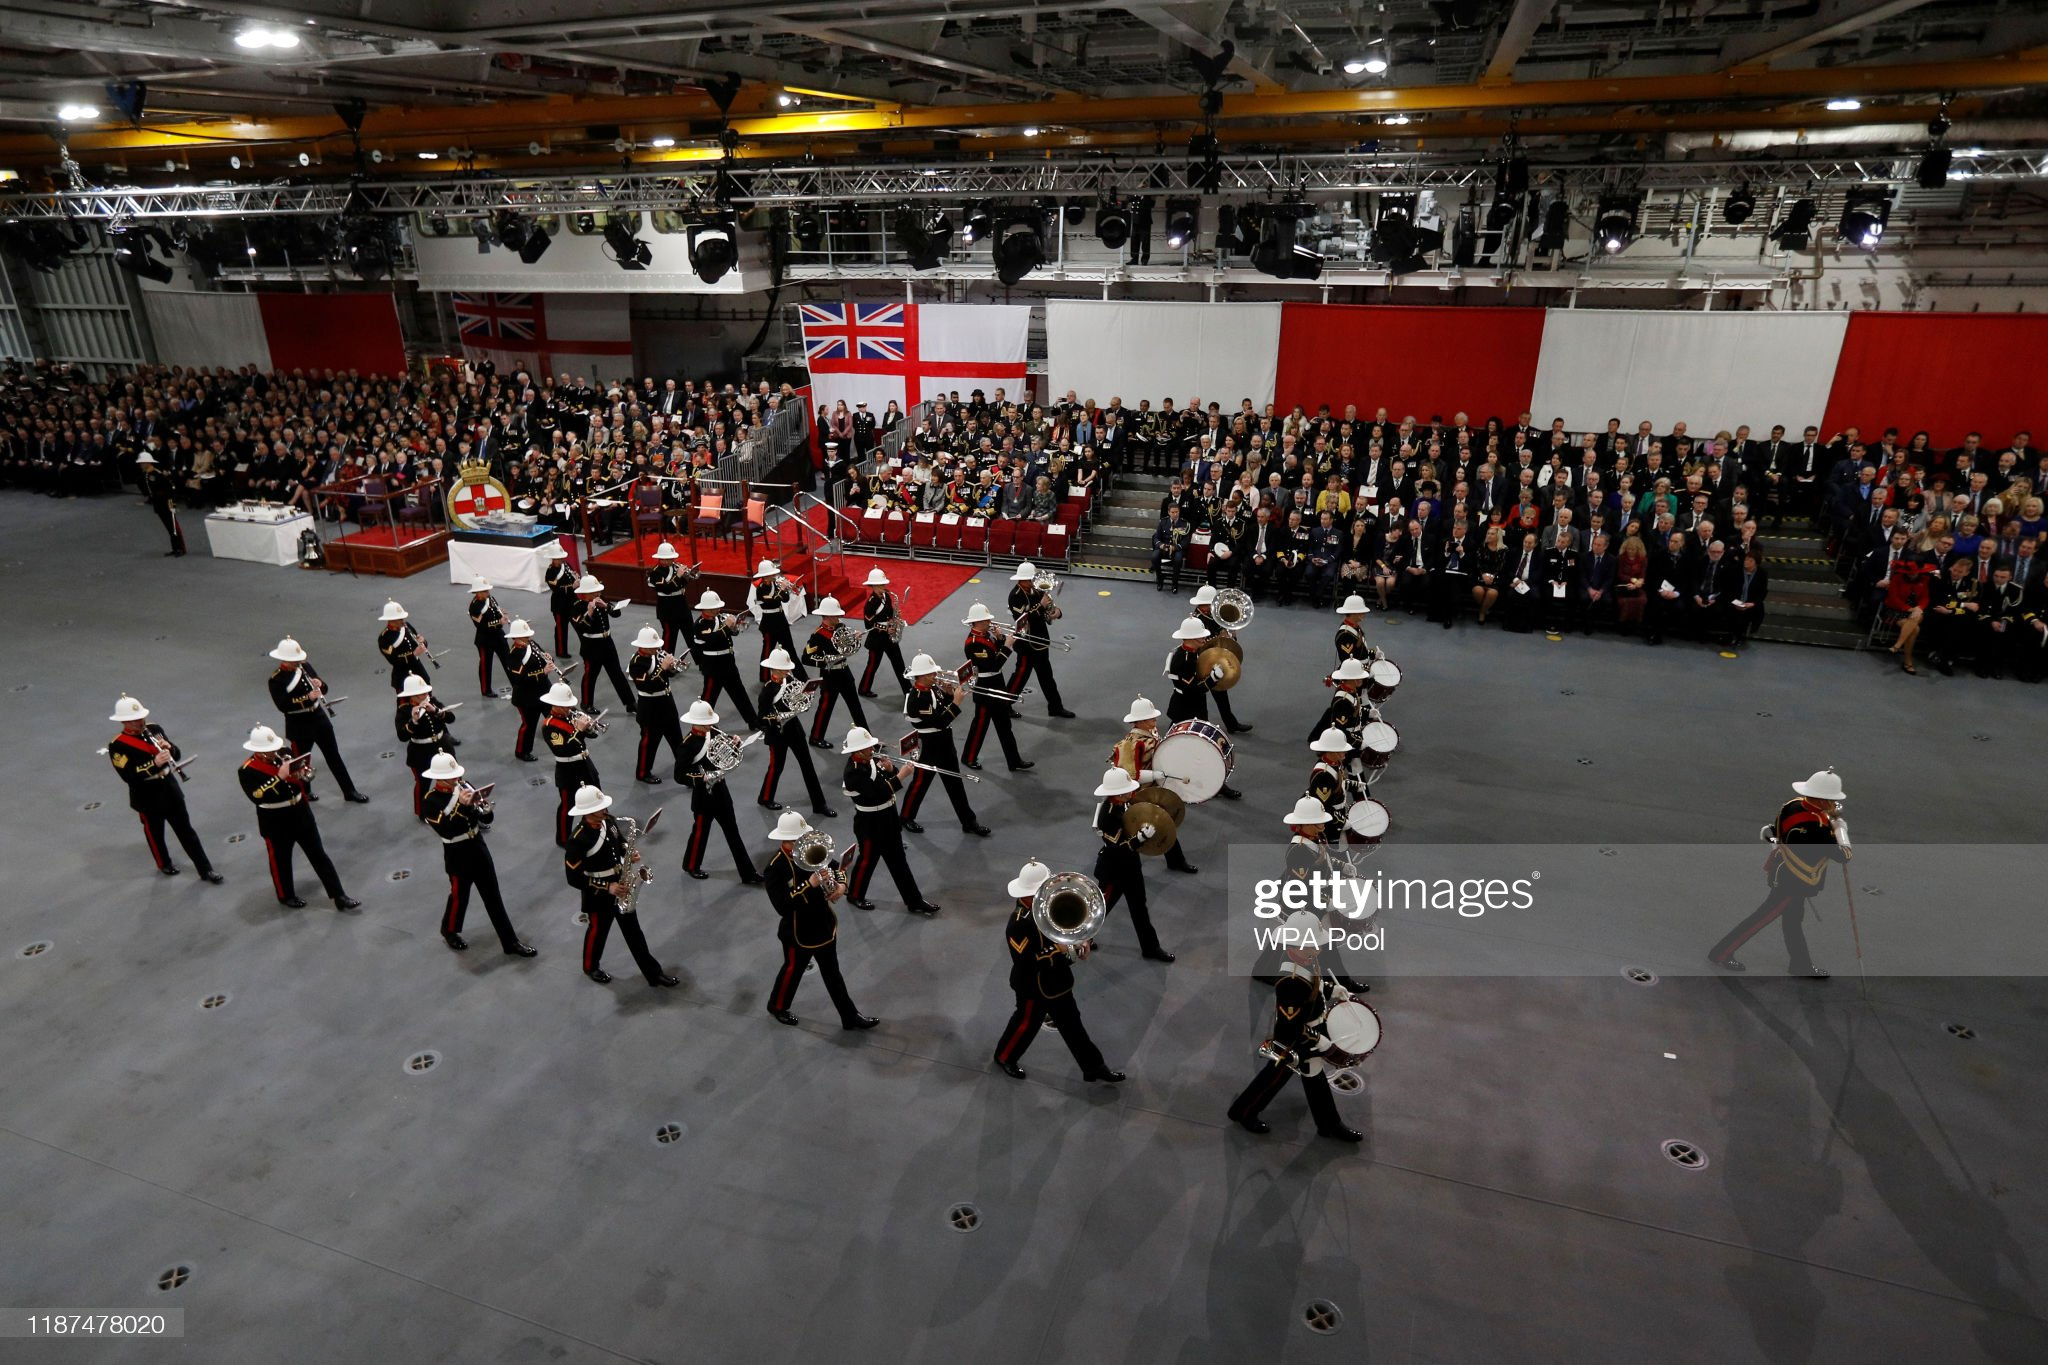 the-band-of-her-majestys-royal-marines-collingwood-perform-before-the-picture-id1187478020